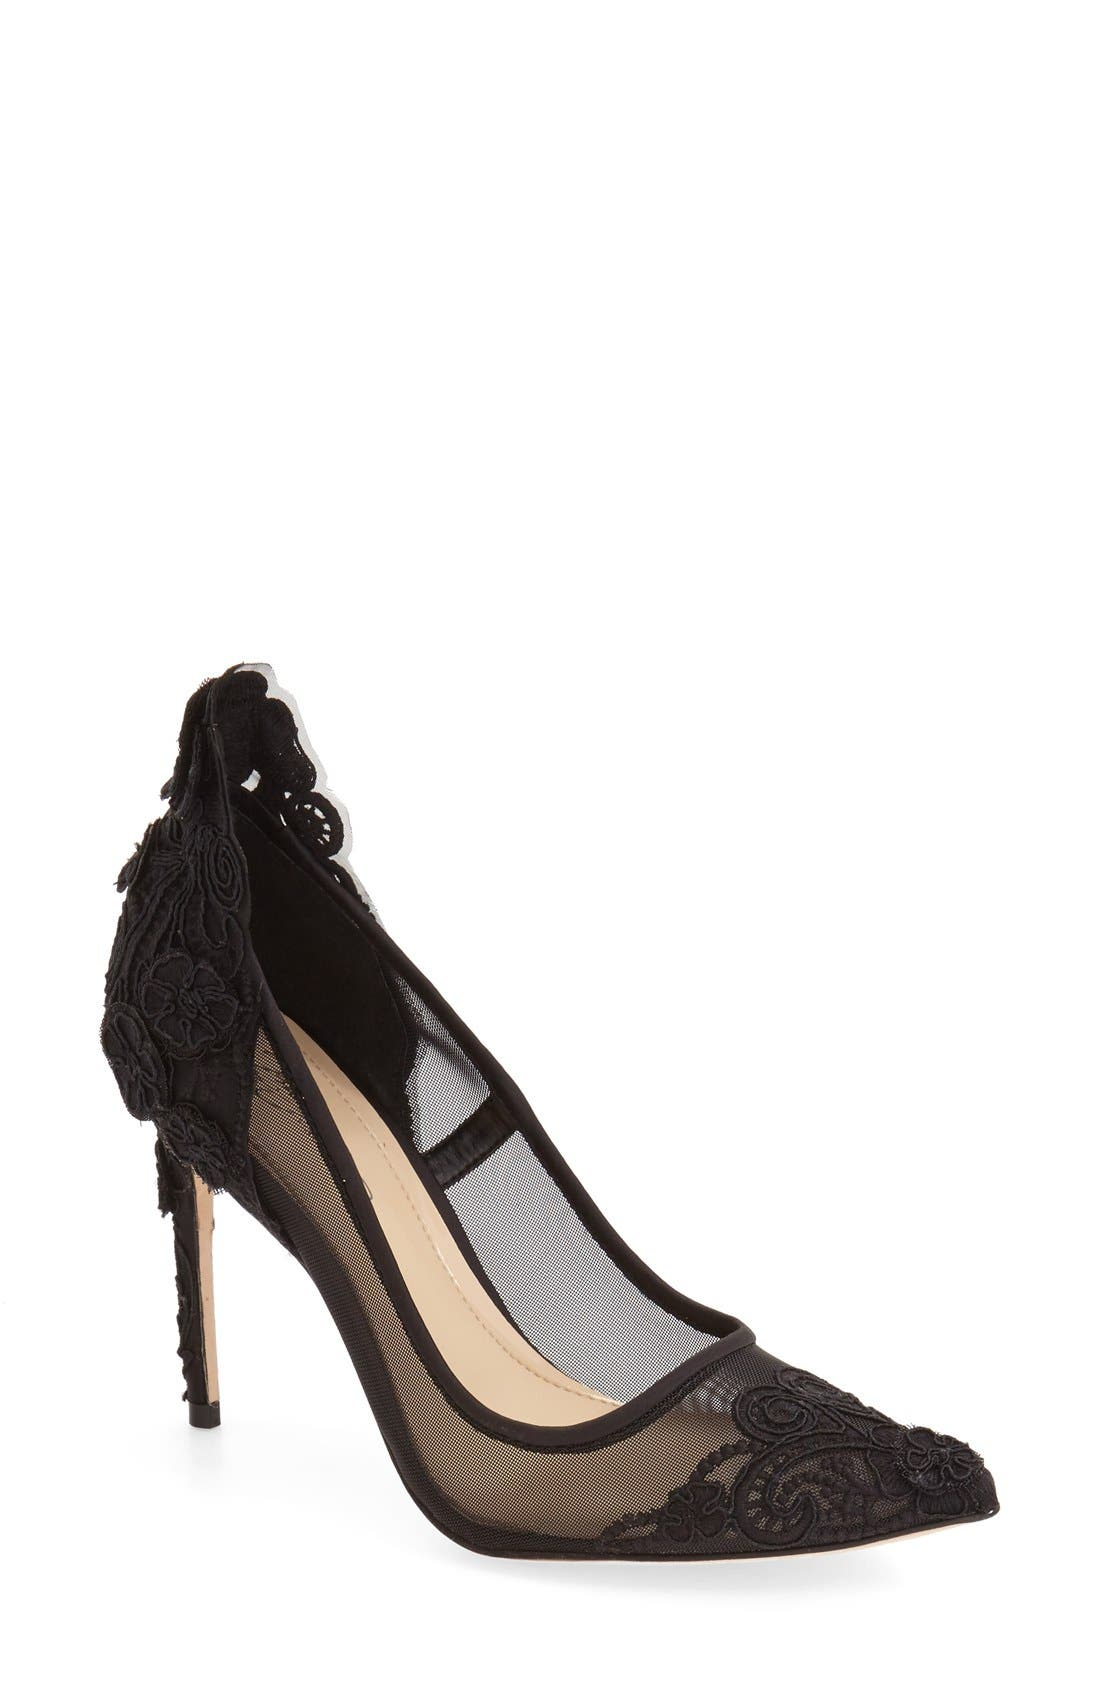 IMAGINE BY VINCE CAMUTO 'Ophelia' Pointy Toe Pump, Main, color, 001